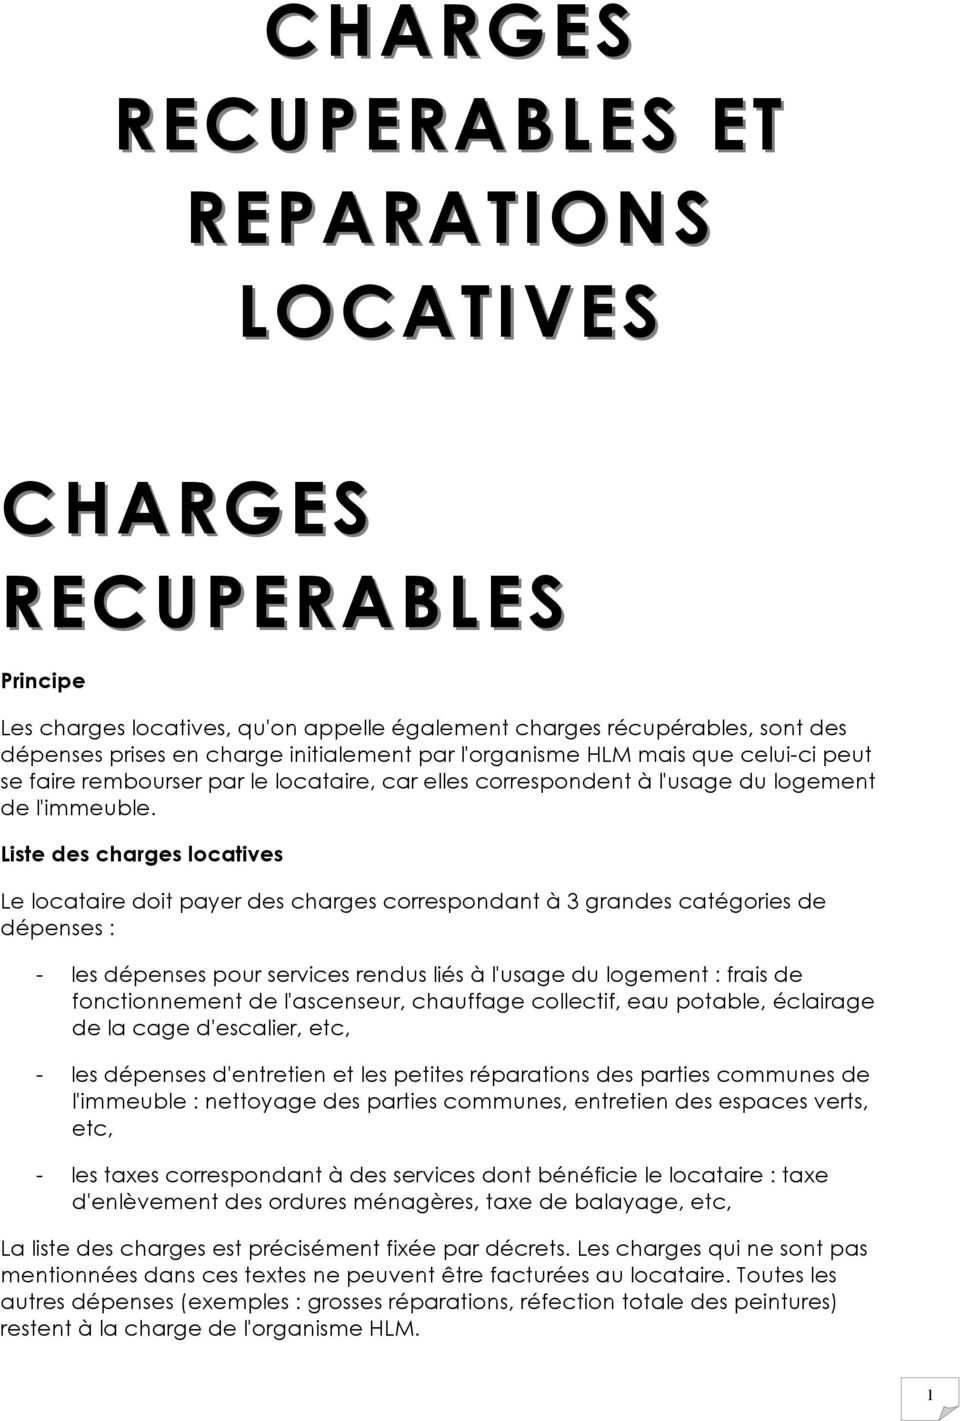 Charges charges recuperables et reparations locatives pdf - Repartition charges locatives ...